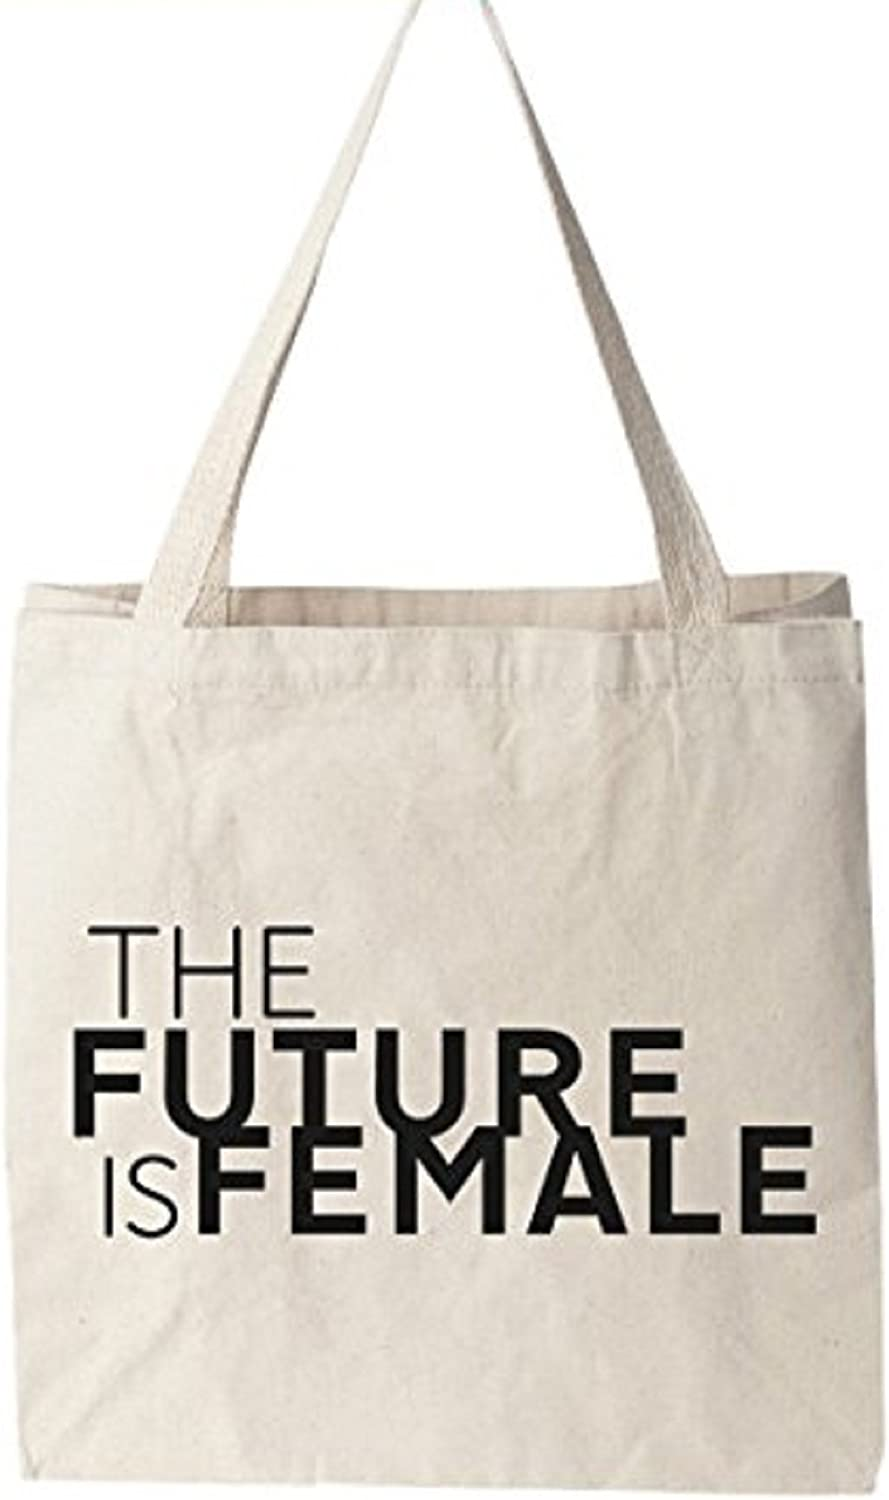 "Reusable Ideal for Groceries Audrey Hepburn Natural Cotton Canvas Tote Bag 12 Oz School and Office Use Shopping 11/""X14/""X5/"""